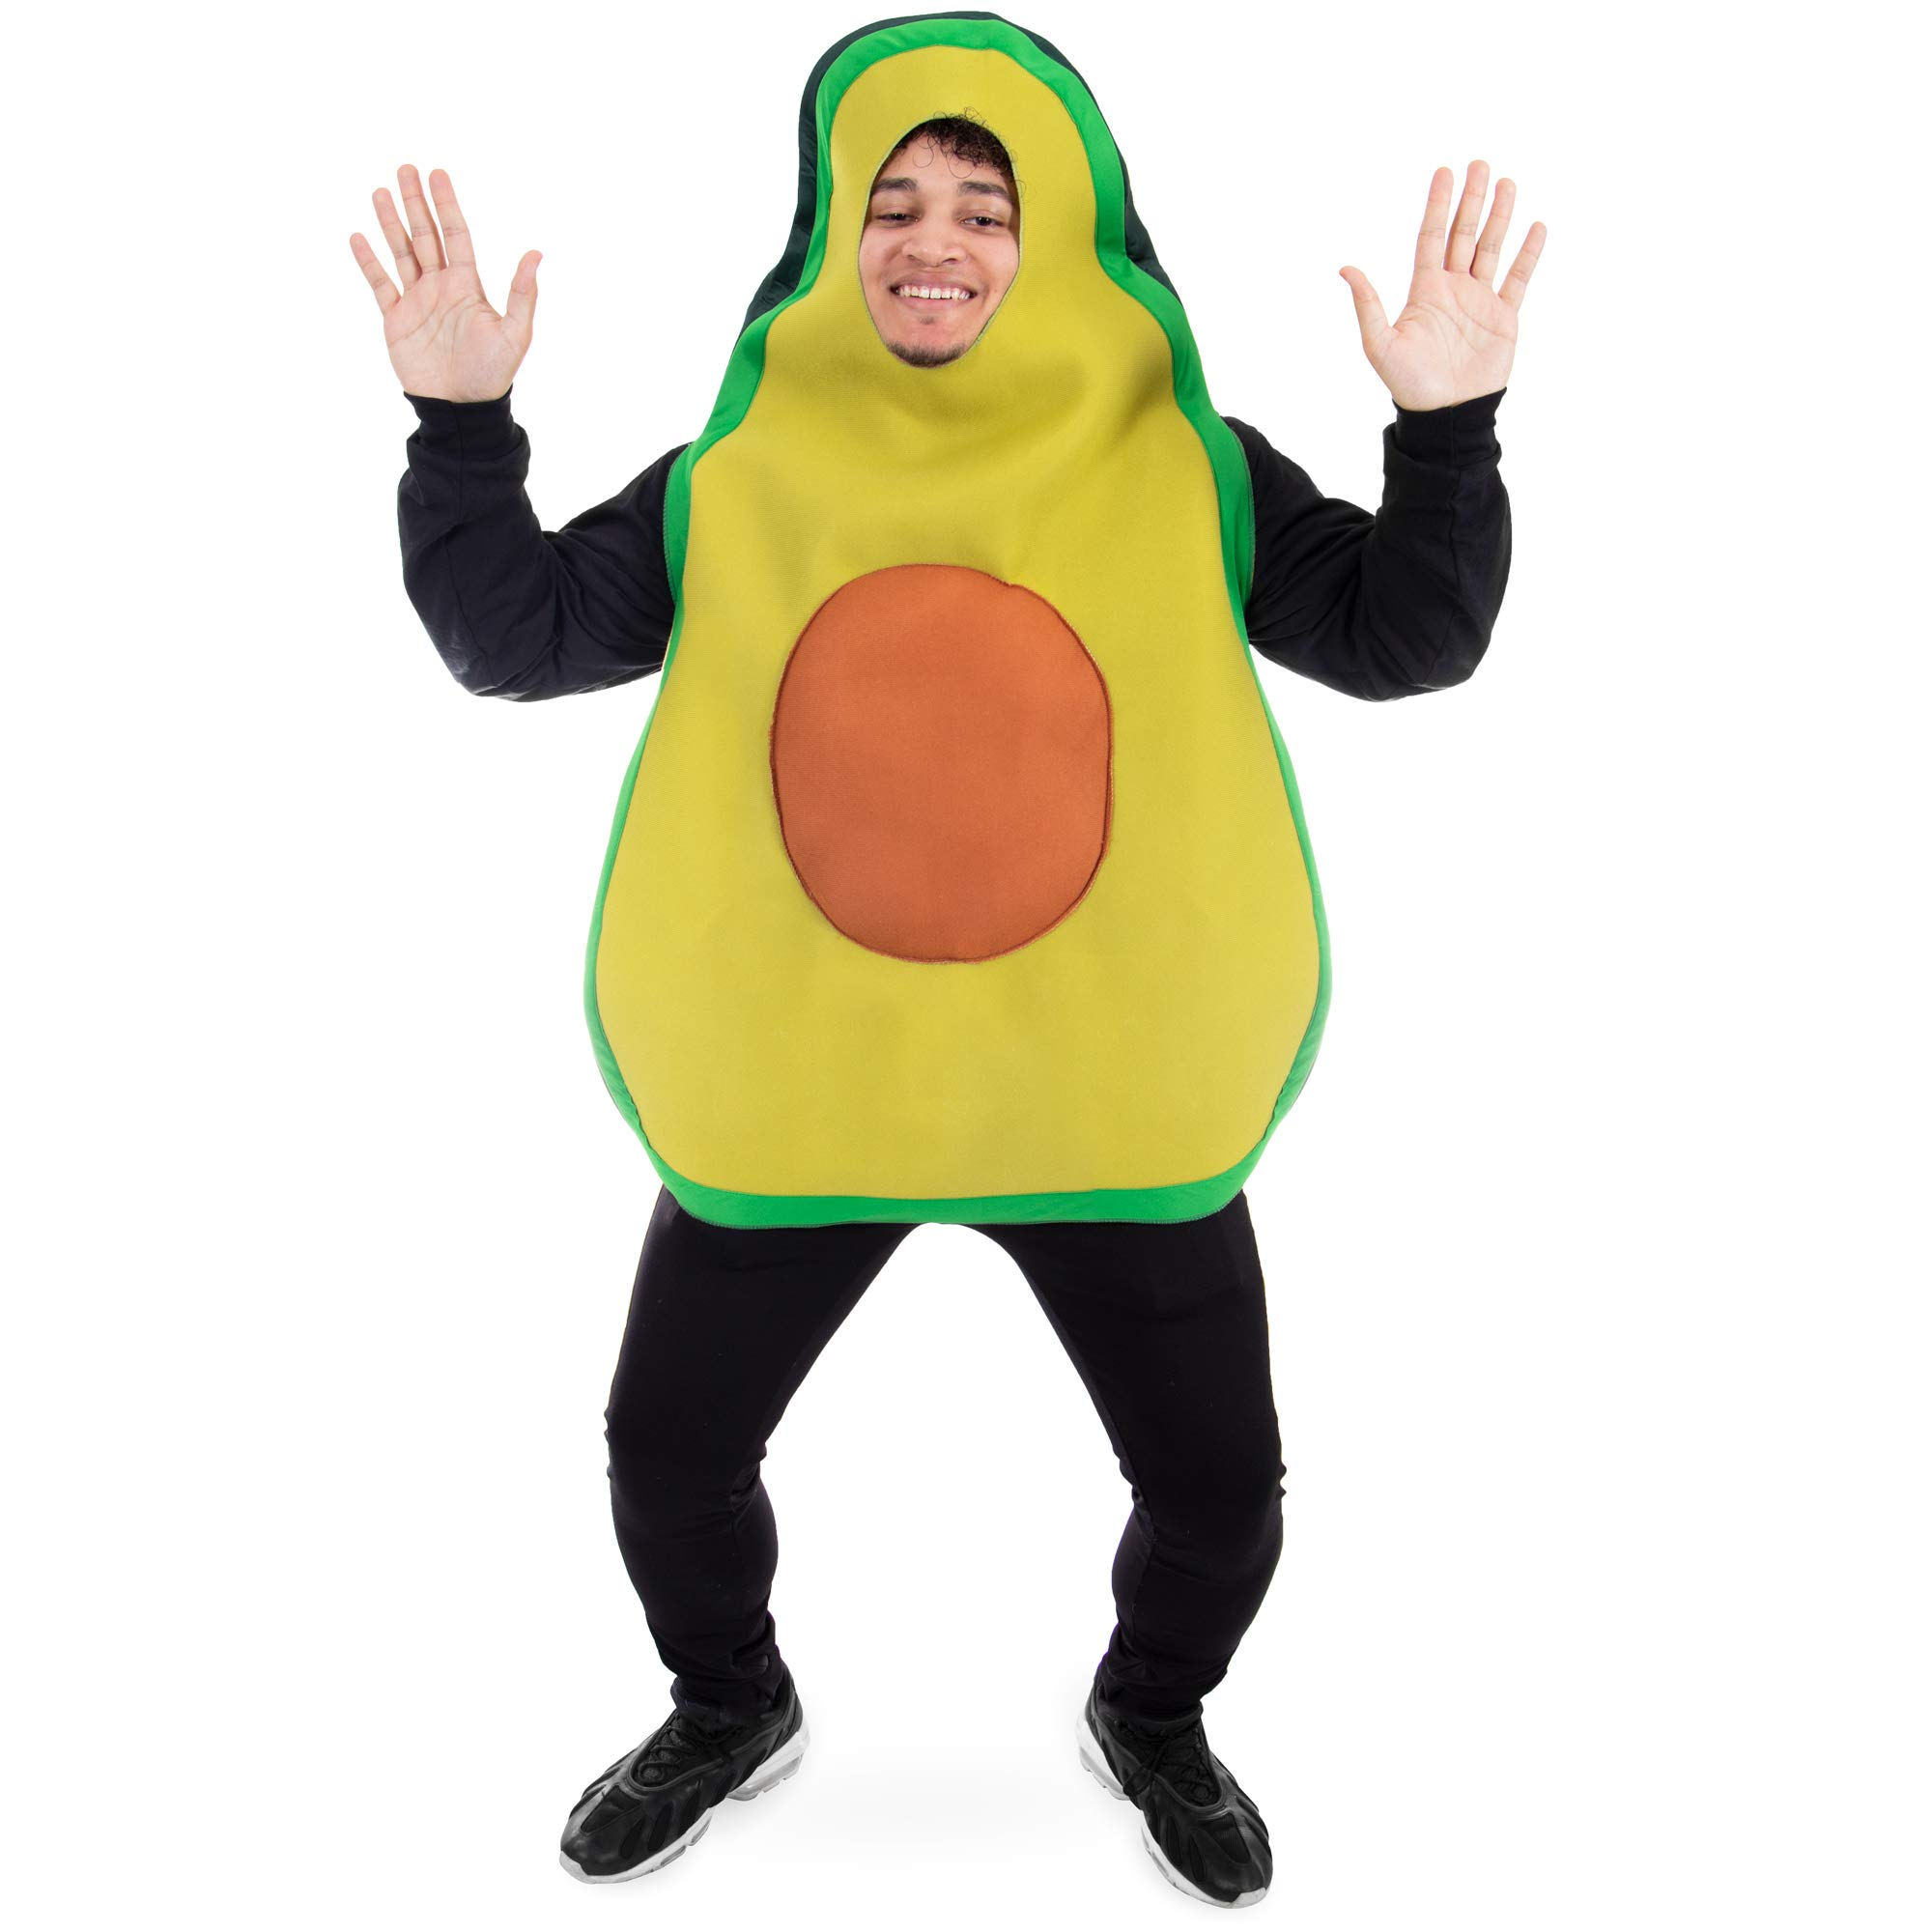 Boo Inc. Fresh Avocado Halloween Costume | Funny Food, Adult One-Size Unisex Outfit